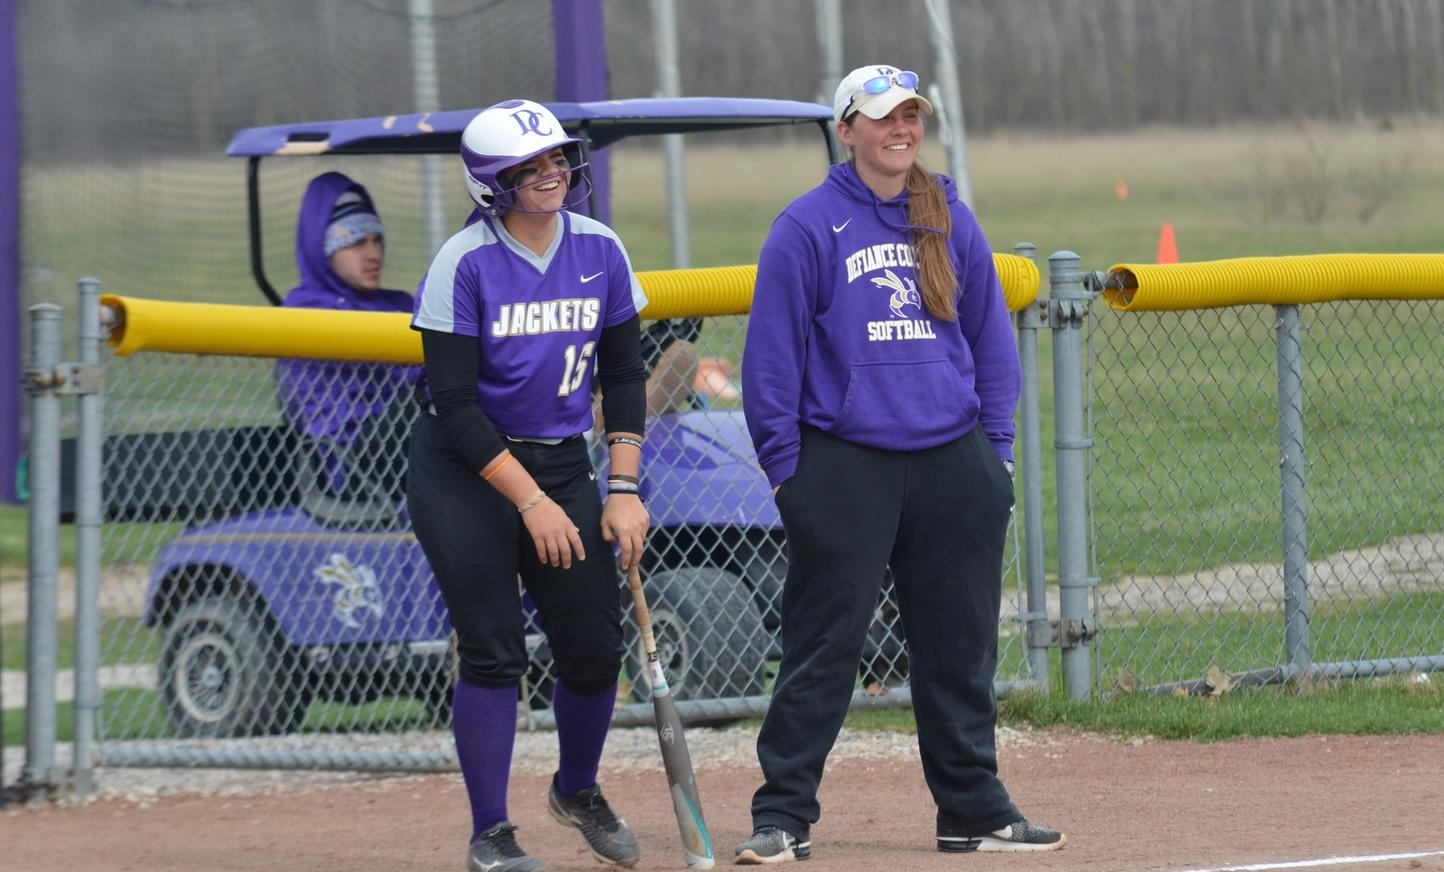 Softball Improves Win Streak to Seven Games